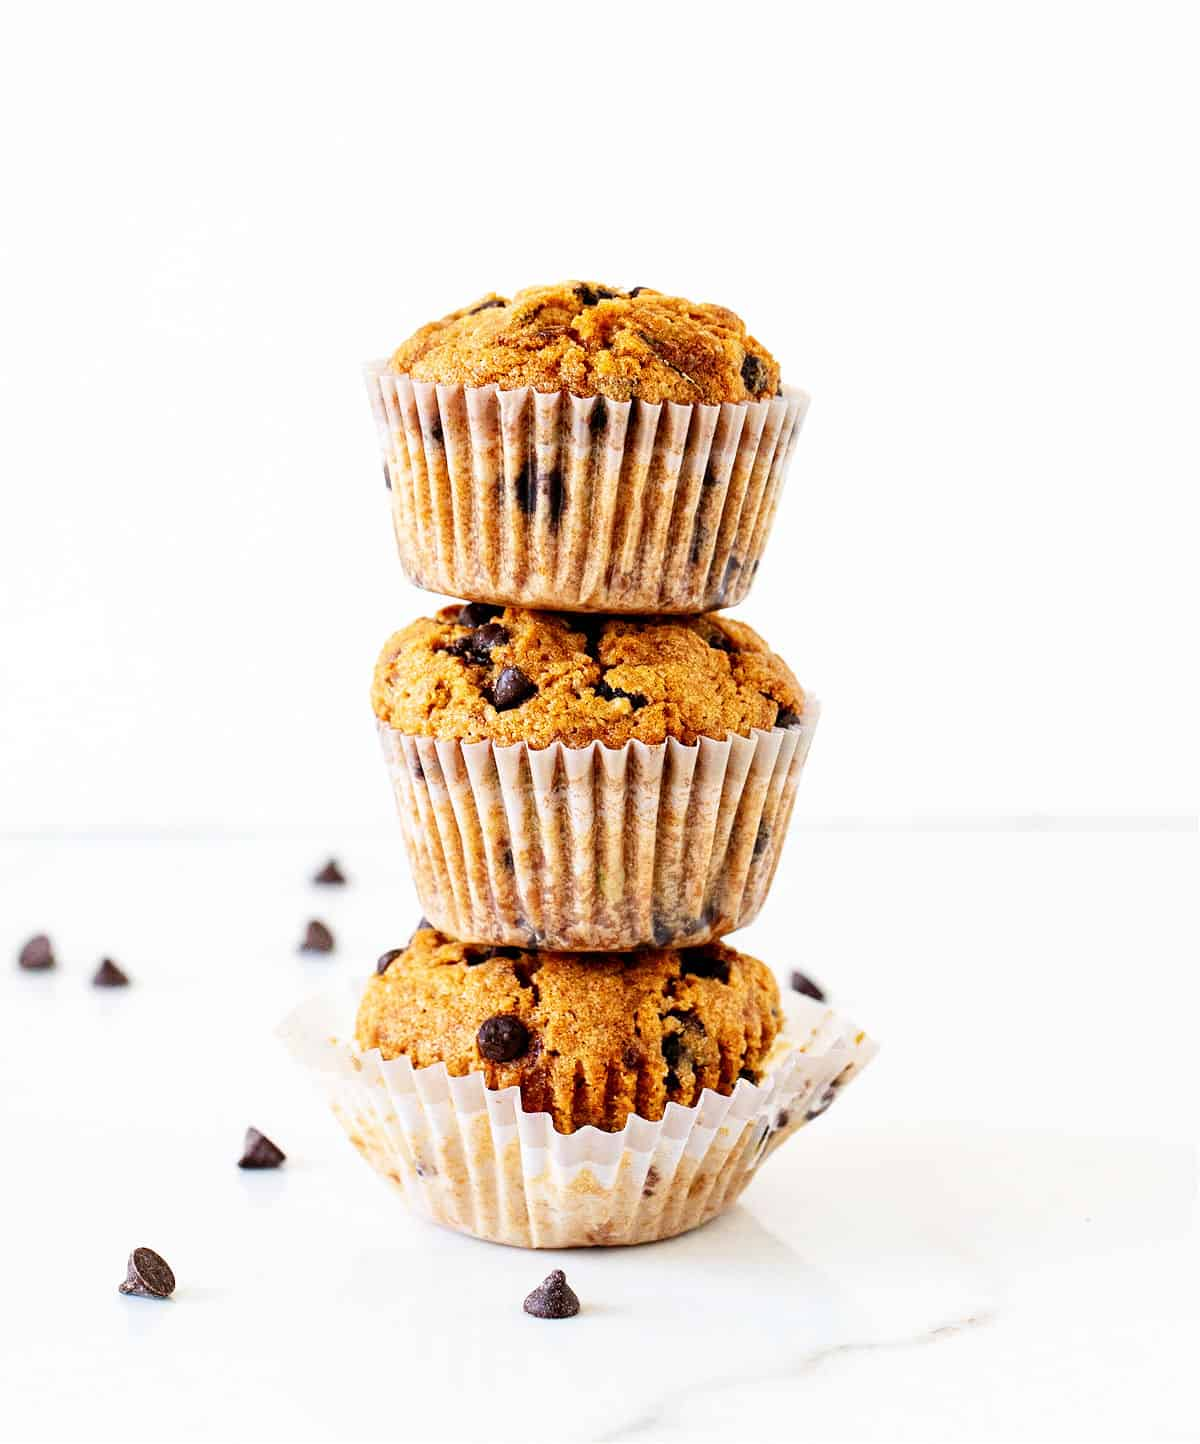 White background with stack of muffins with chocolate chips in paper liners